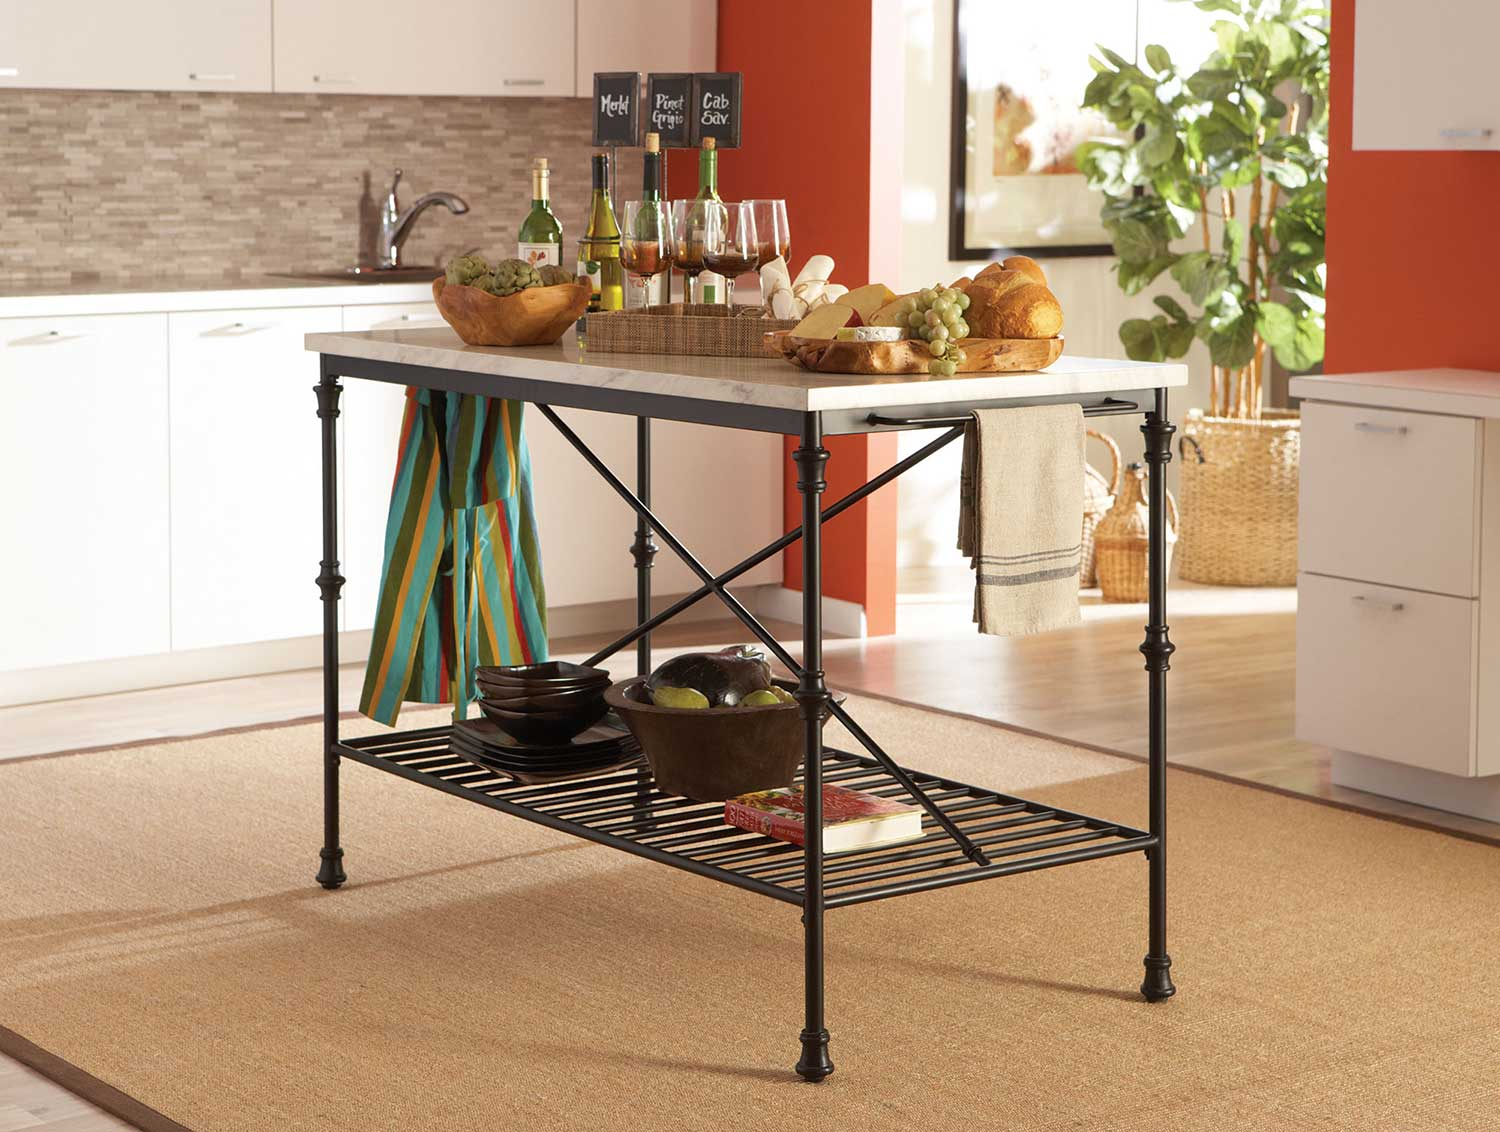 Coaster 910120 Kitchen Island with Faux Marble Top - Black